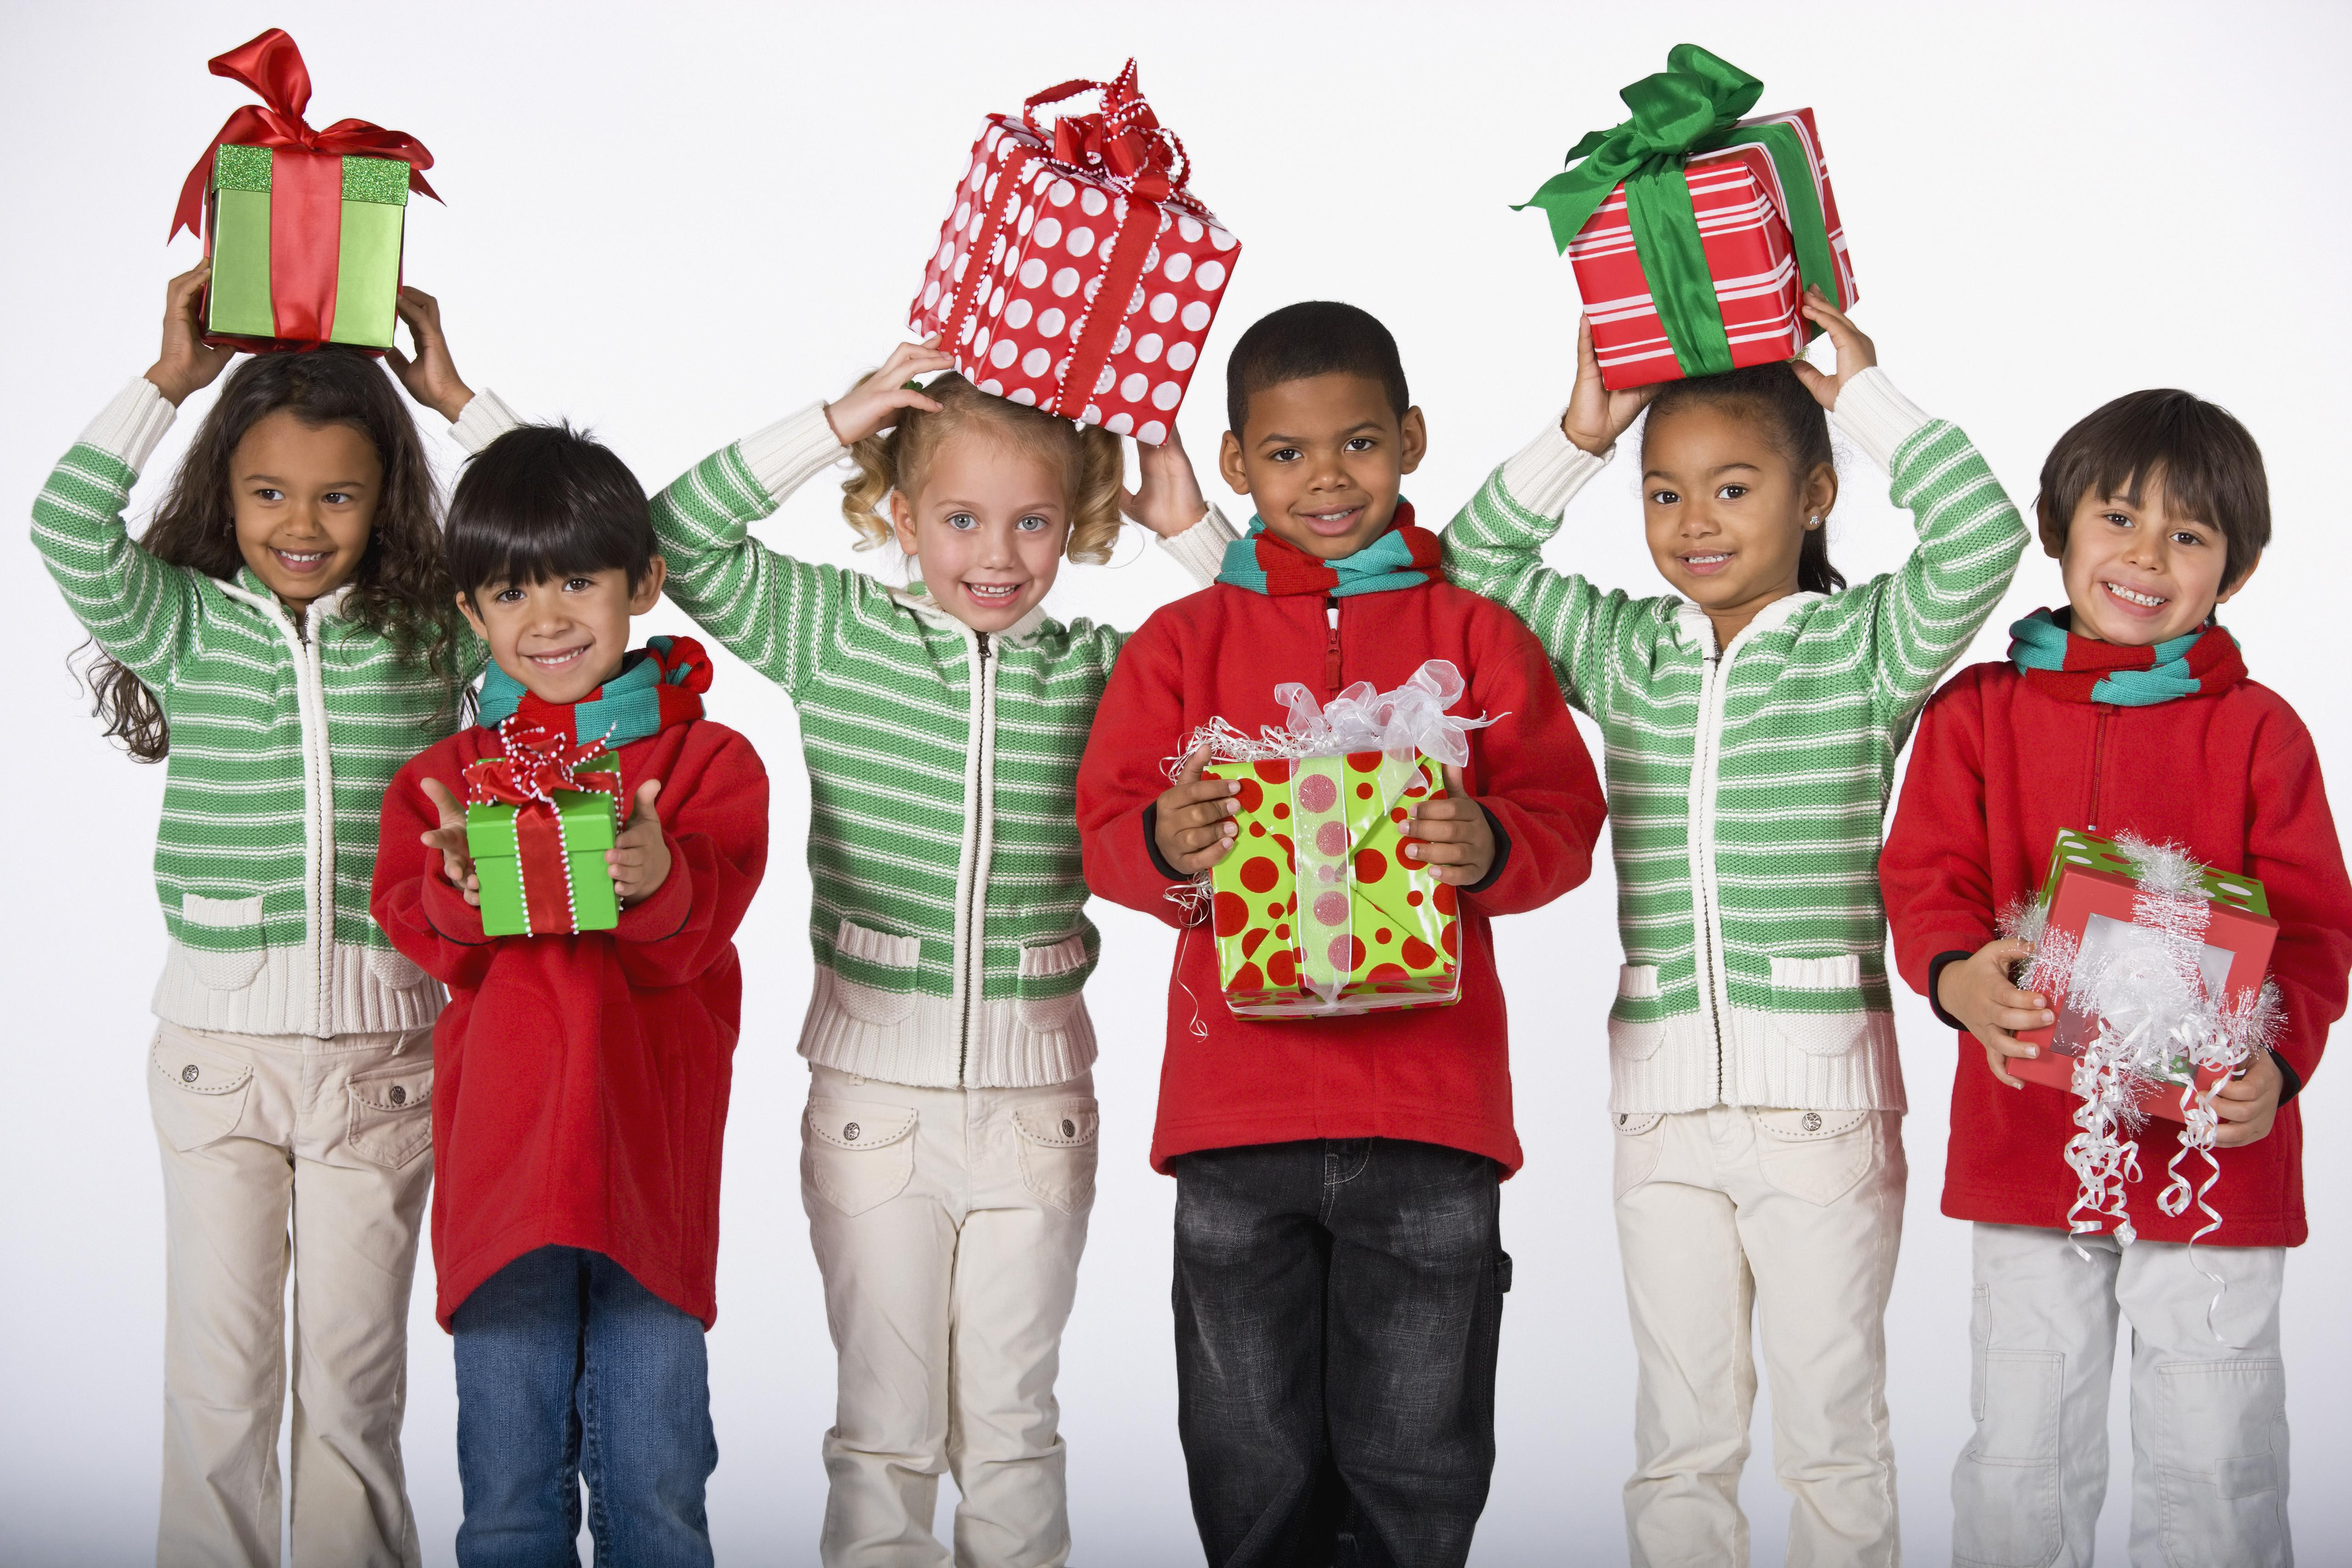 Multi-ethnic children holding Christmas gifts